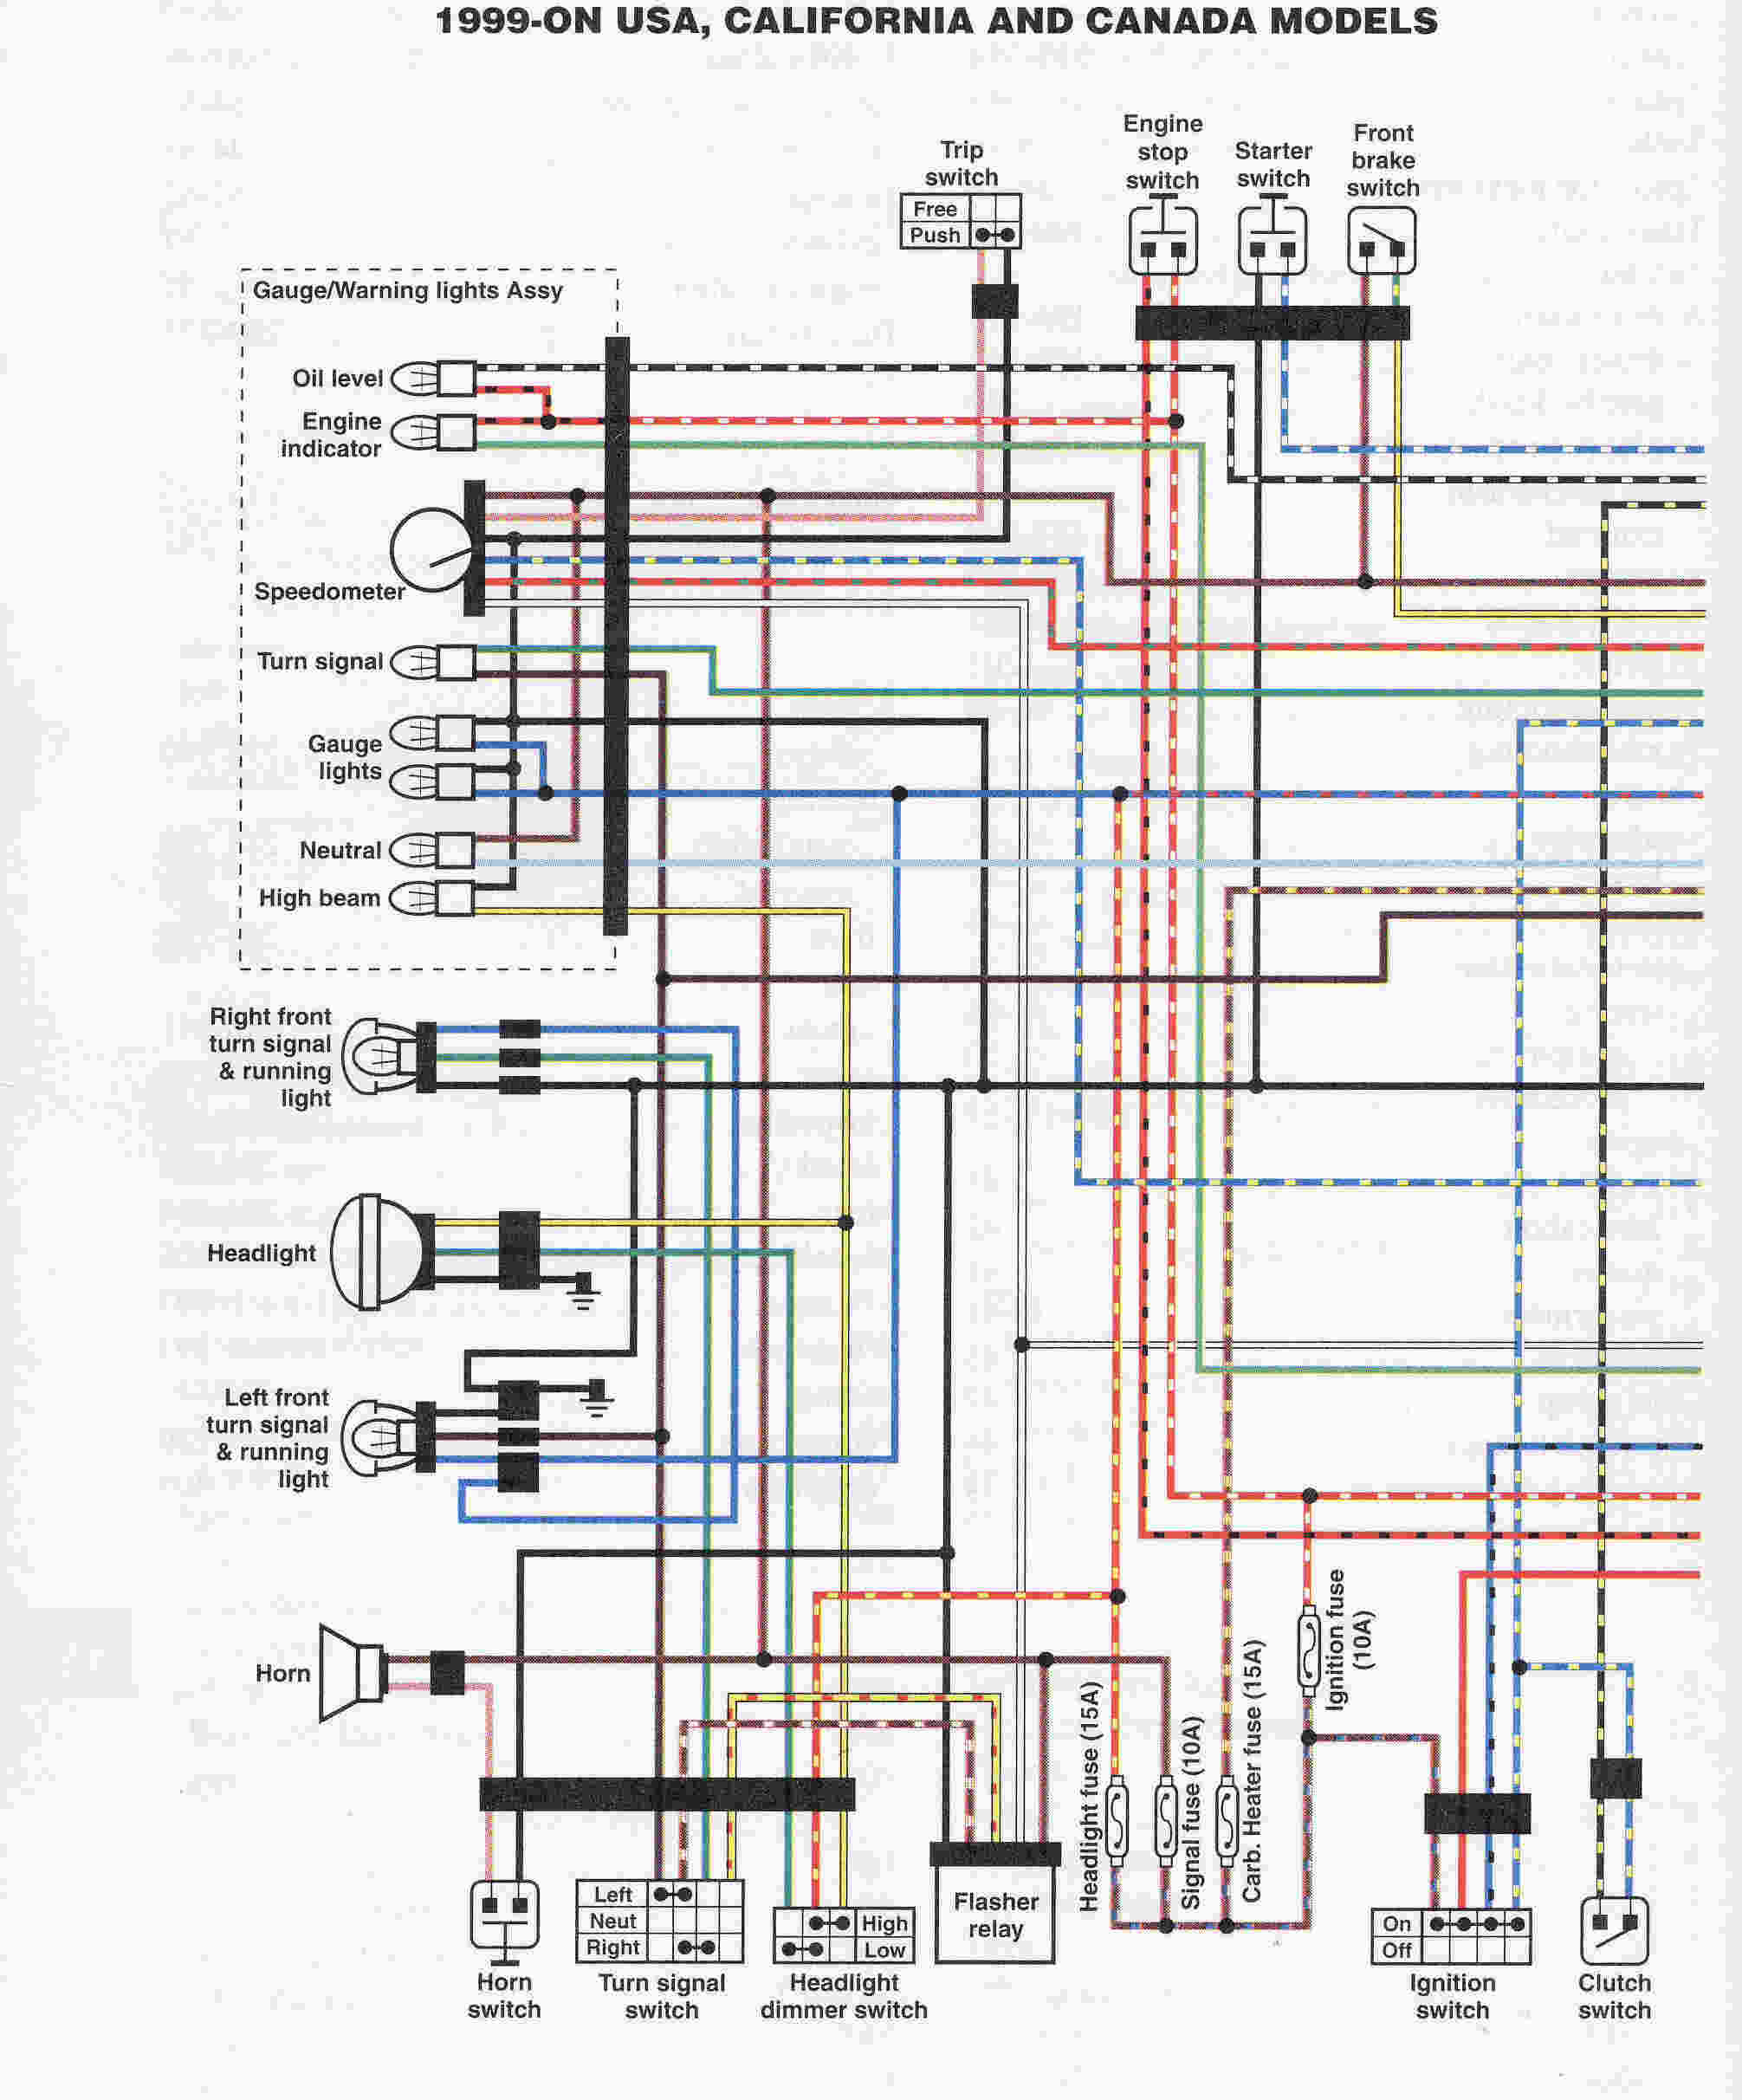 yamaha v star 1100 headlight wiring diagram diagram base website wiring  diagram - umlcasediagram.mjjforum.it  diagram base website full edition - mjjforum